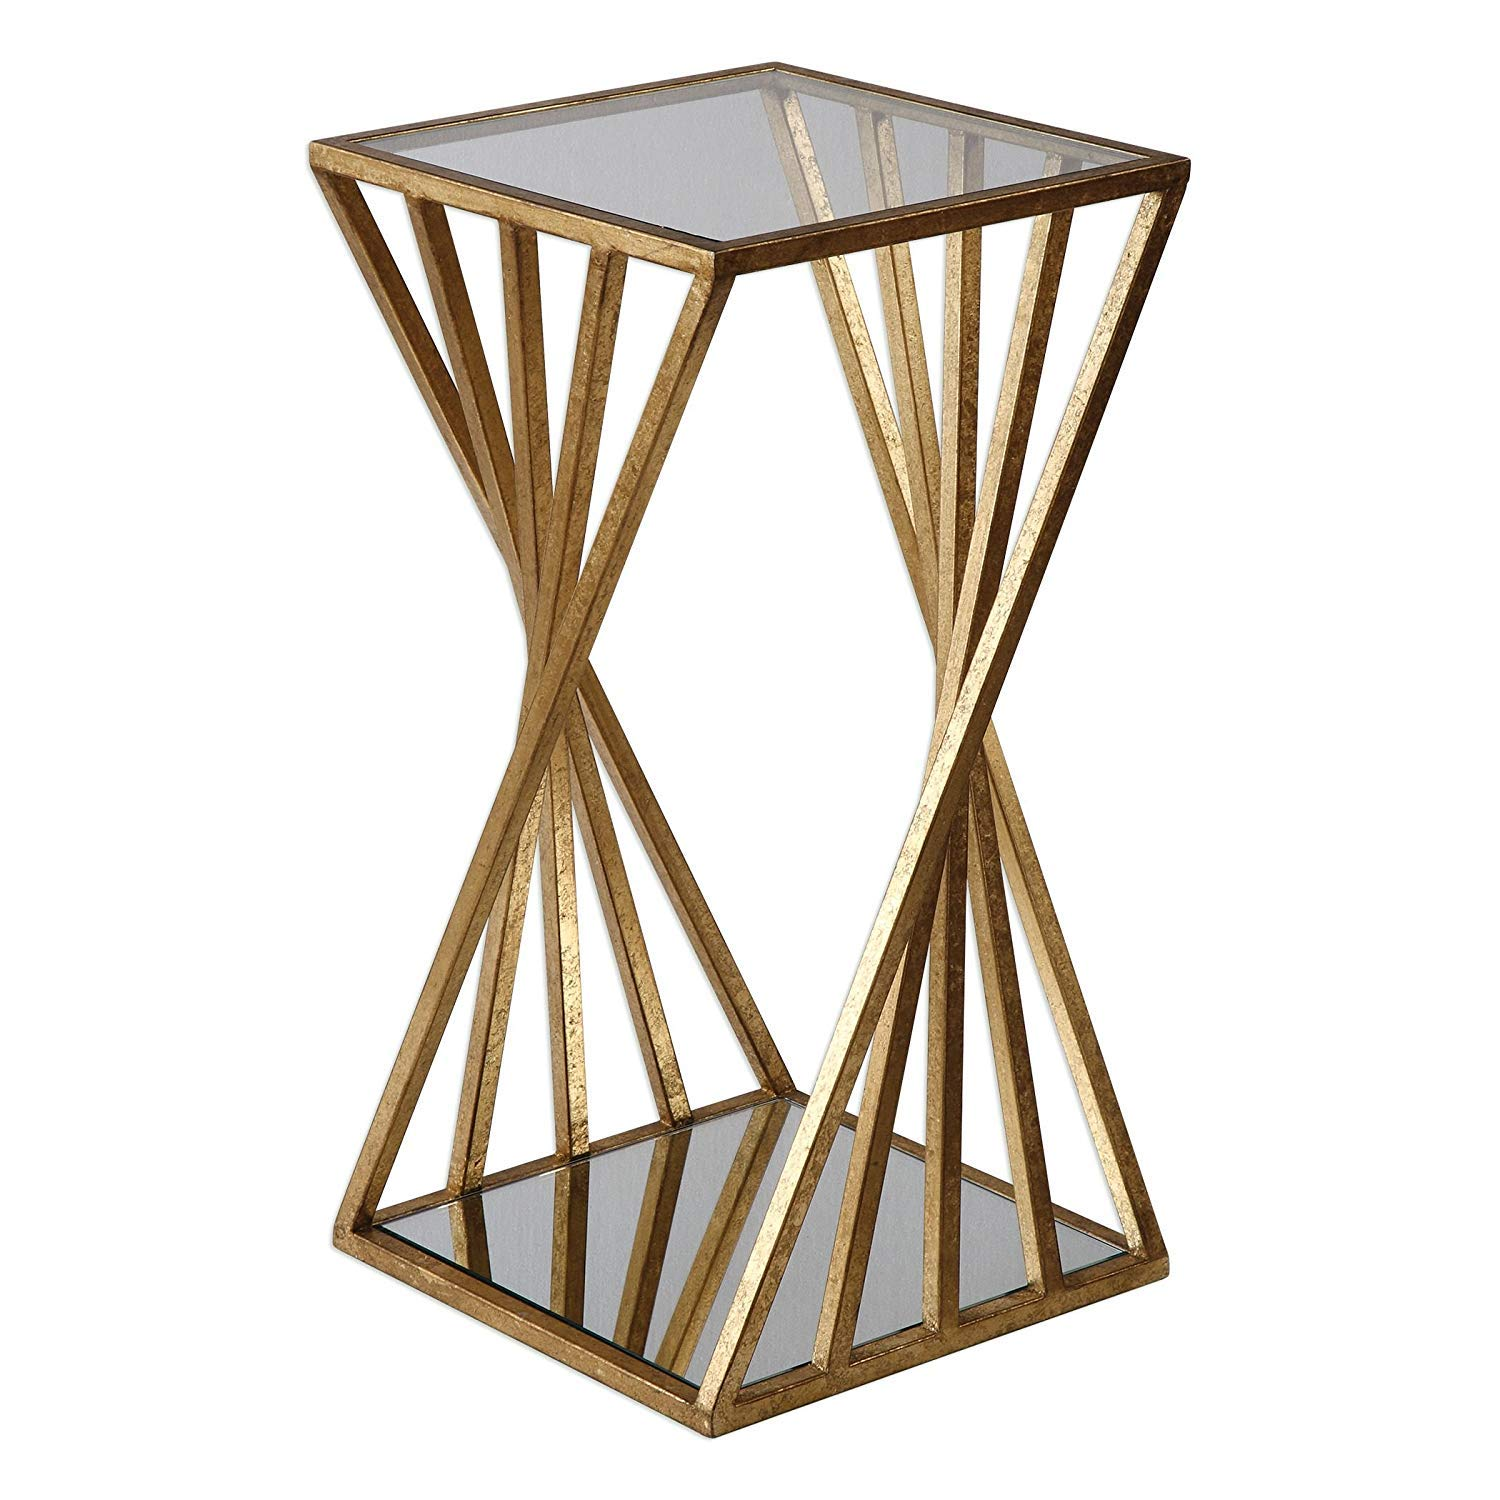 gold angle geometric square accent table open pedestal metal column modern kitchen dining pottery barn legs black cube end oblong cover threshold wicker storage tables target